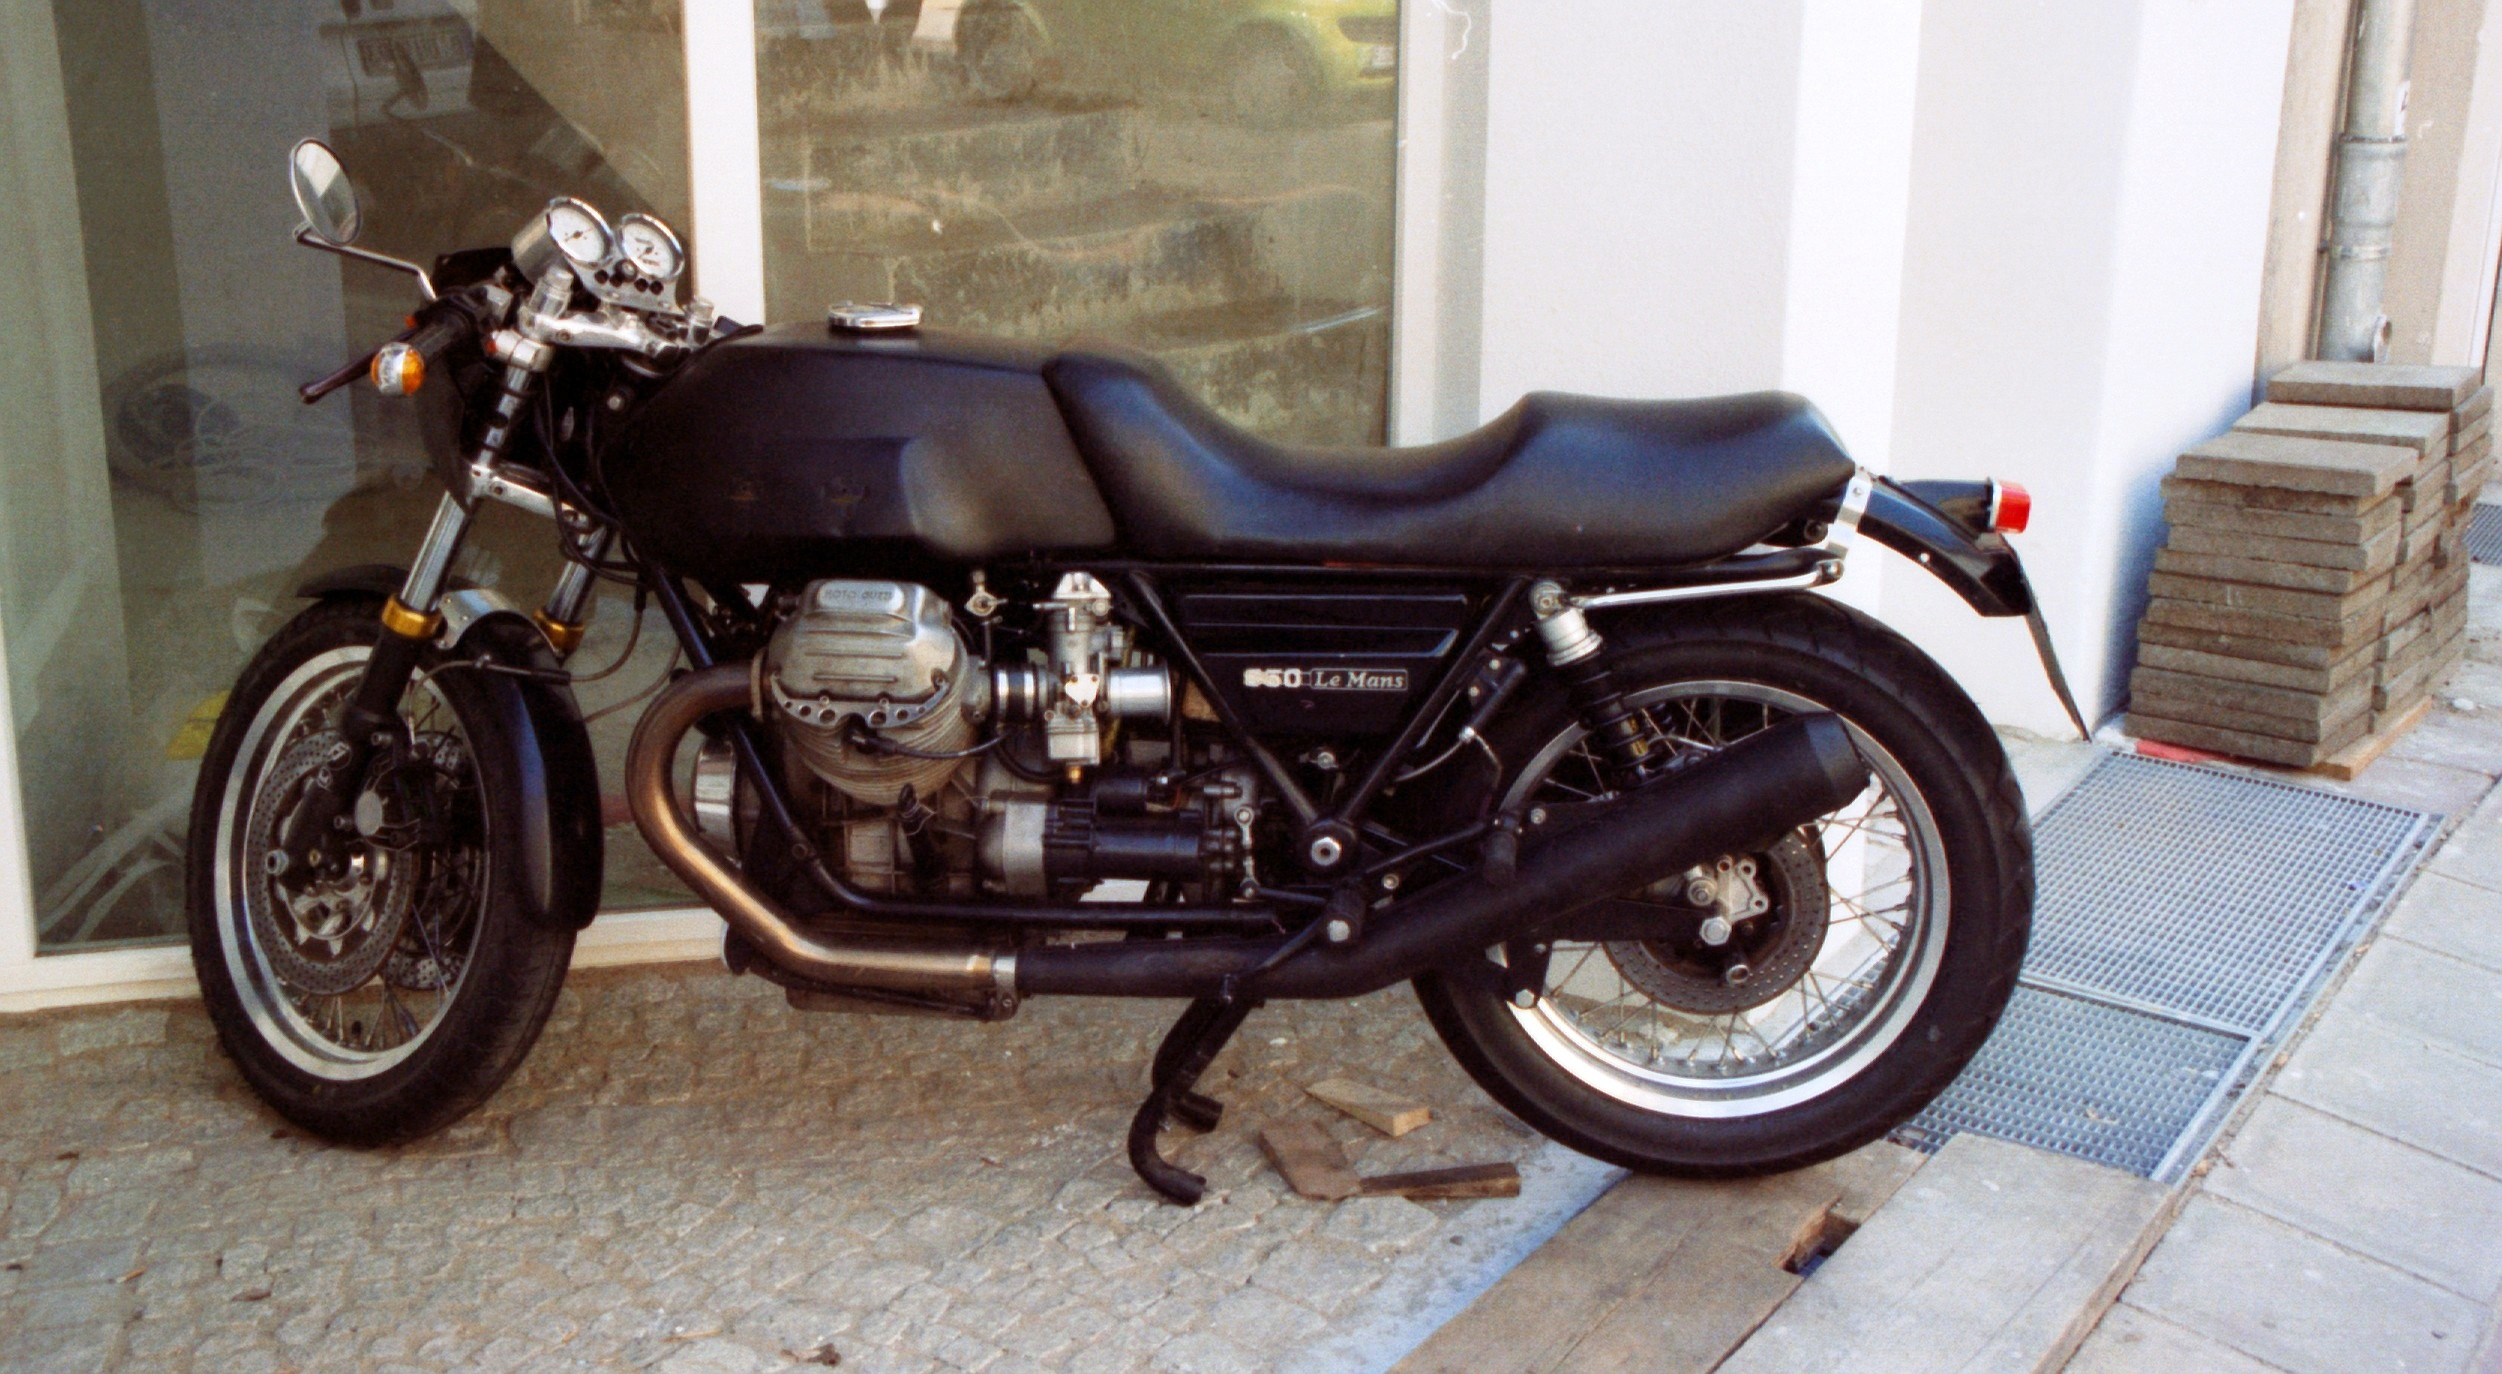 Moto Guzzi 850 California 1975 images #107137